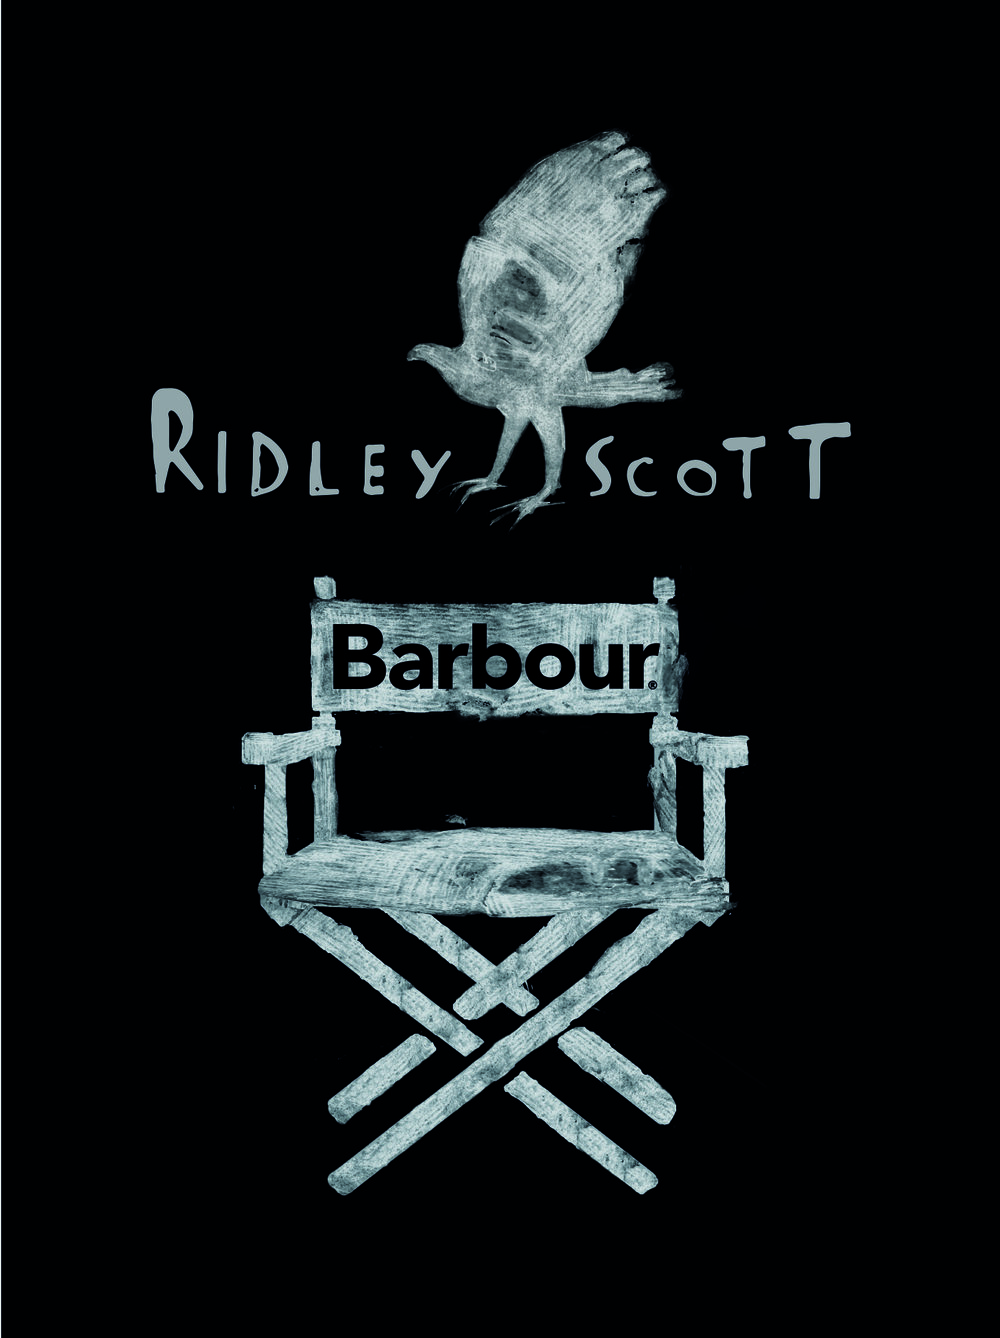 Barbour Ridley Scott4.jpg